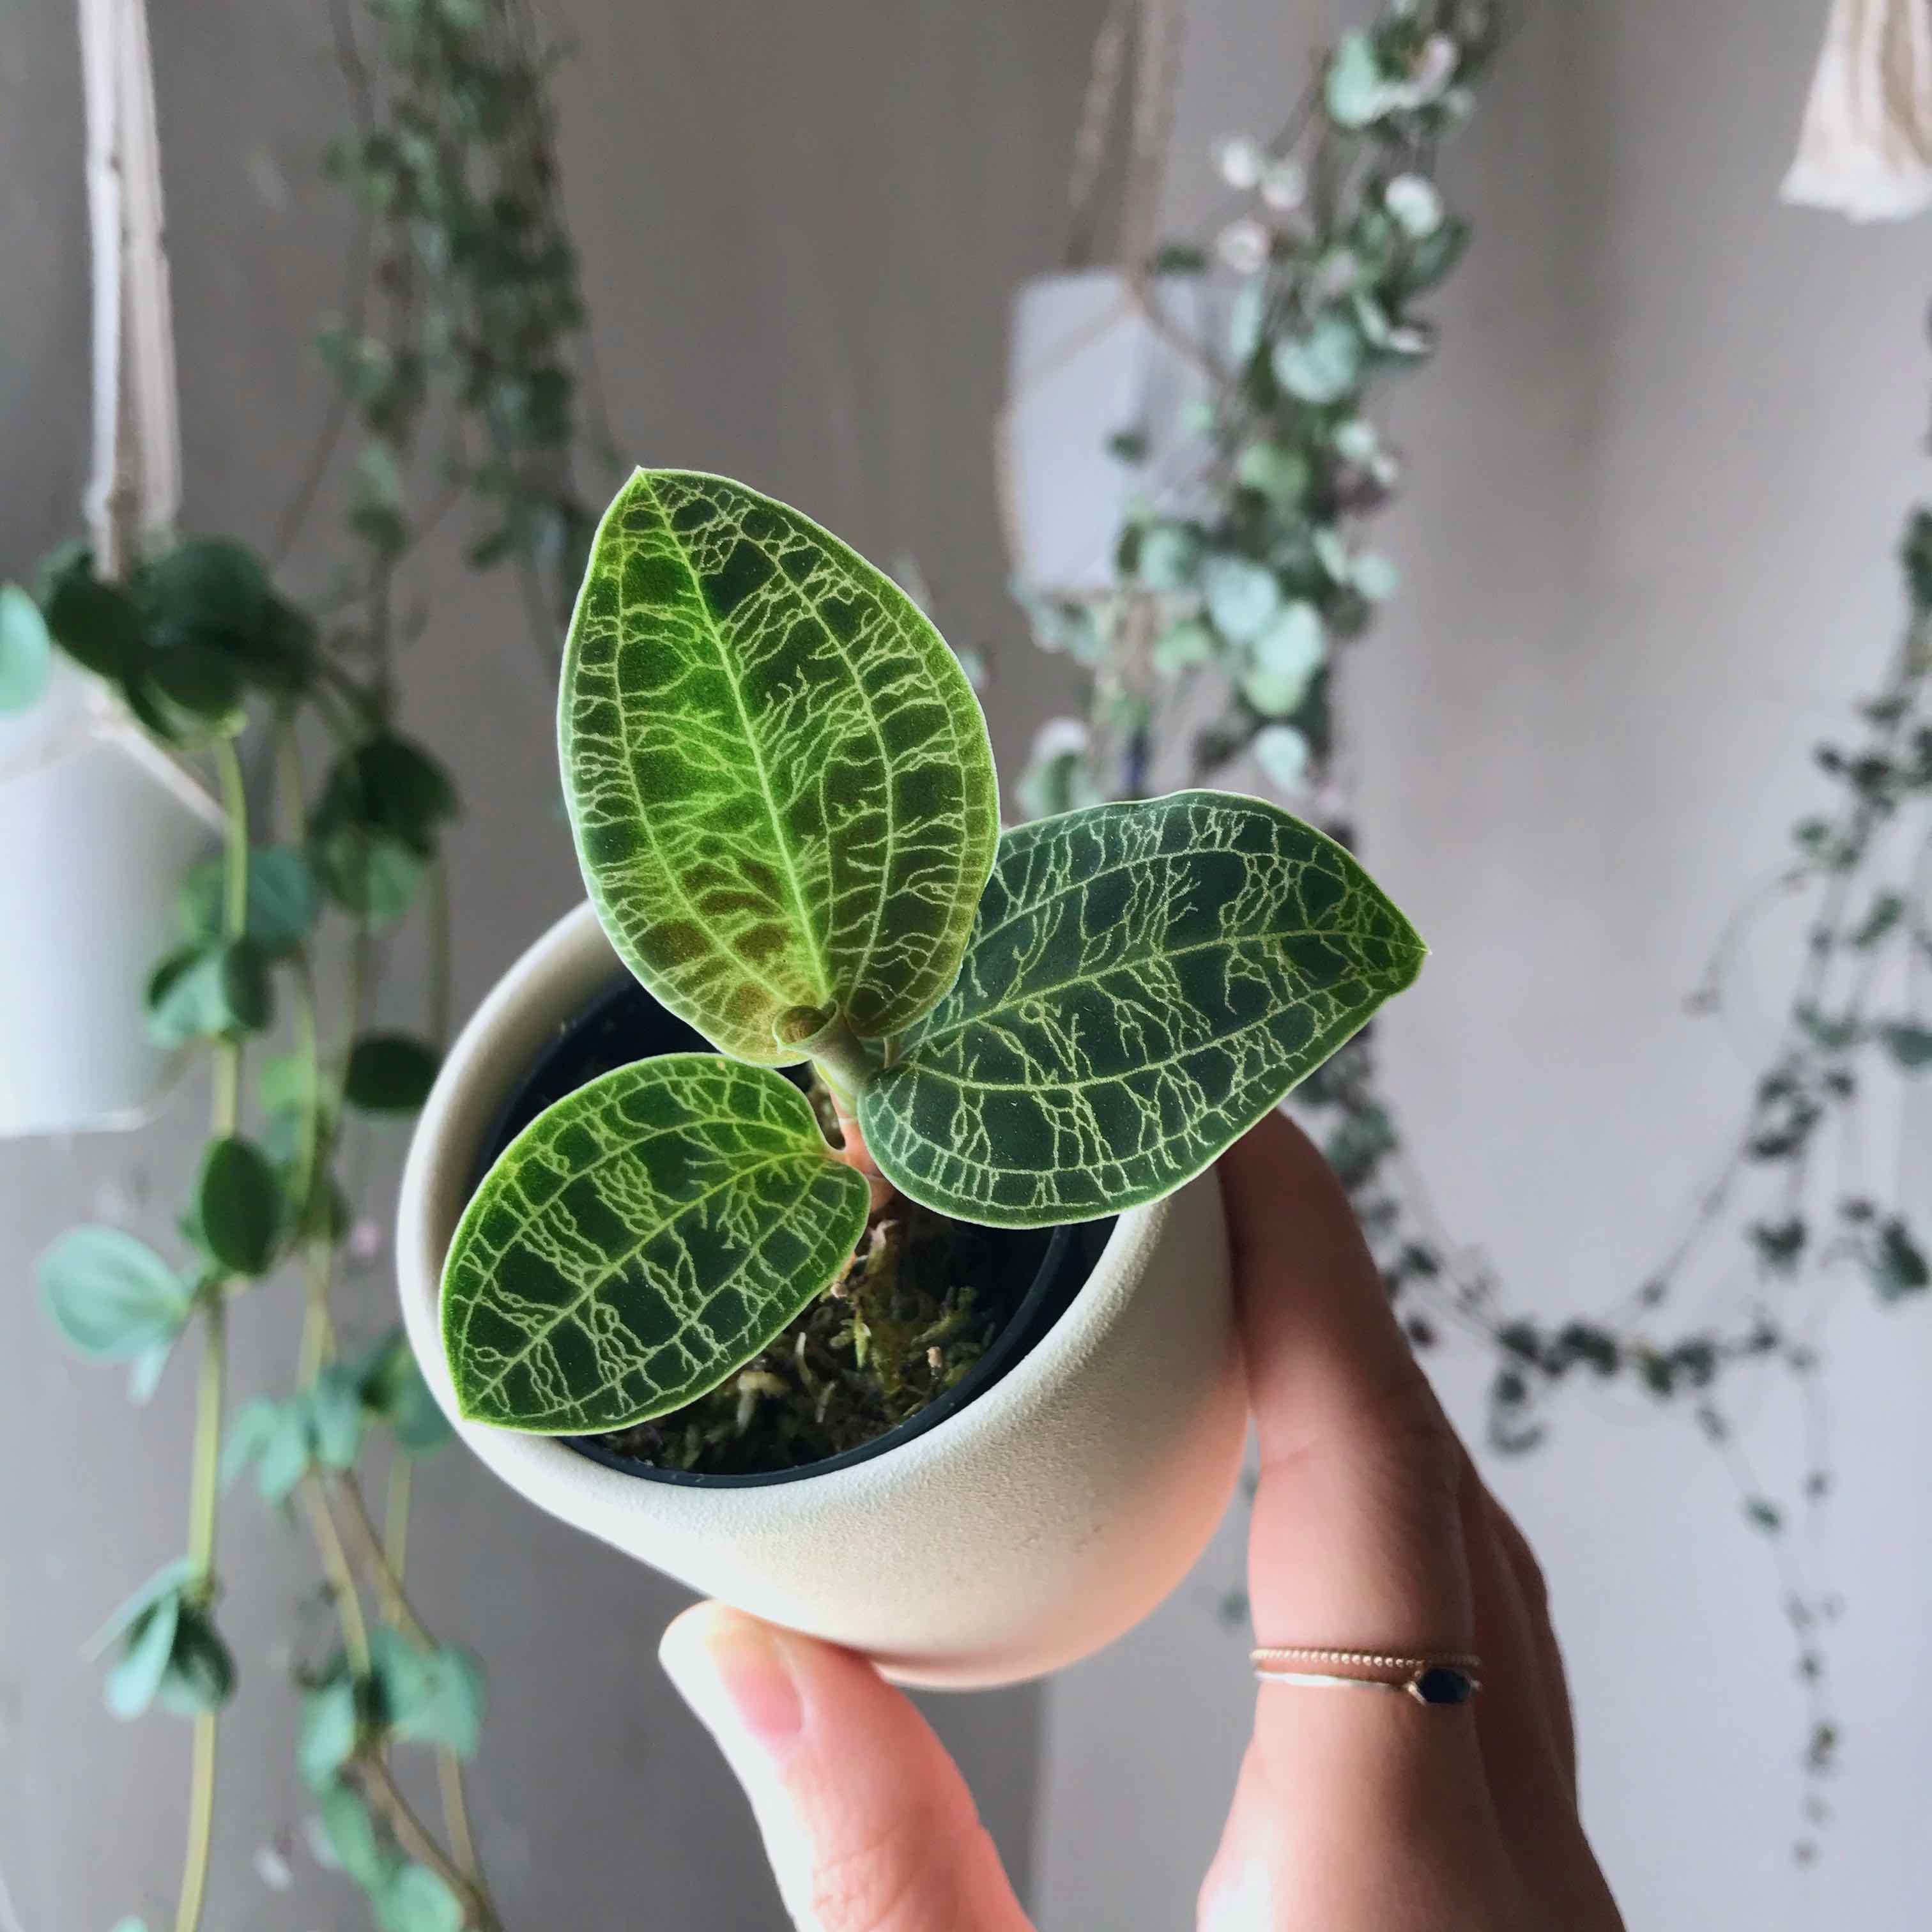 How To Care For Jewel Orchids Macodes Petola Ludisia Discolor Houseplanthouse